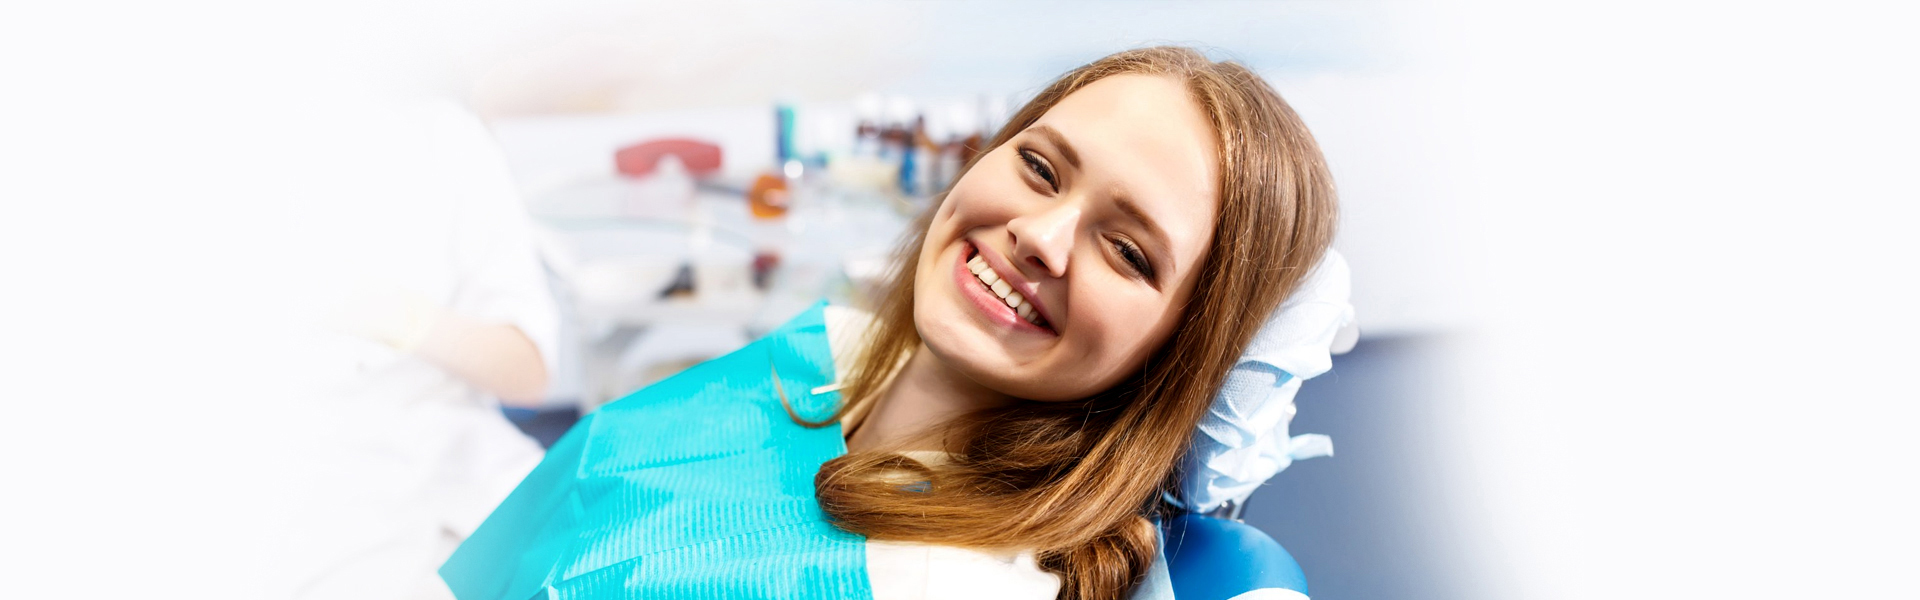 Discolored Teeth Aren't Aesthetically Pleasing: Teeth Whitening Can Improve Your Appearance